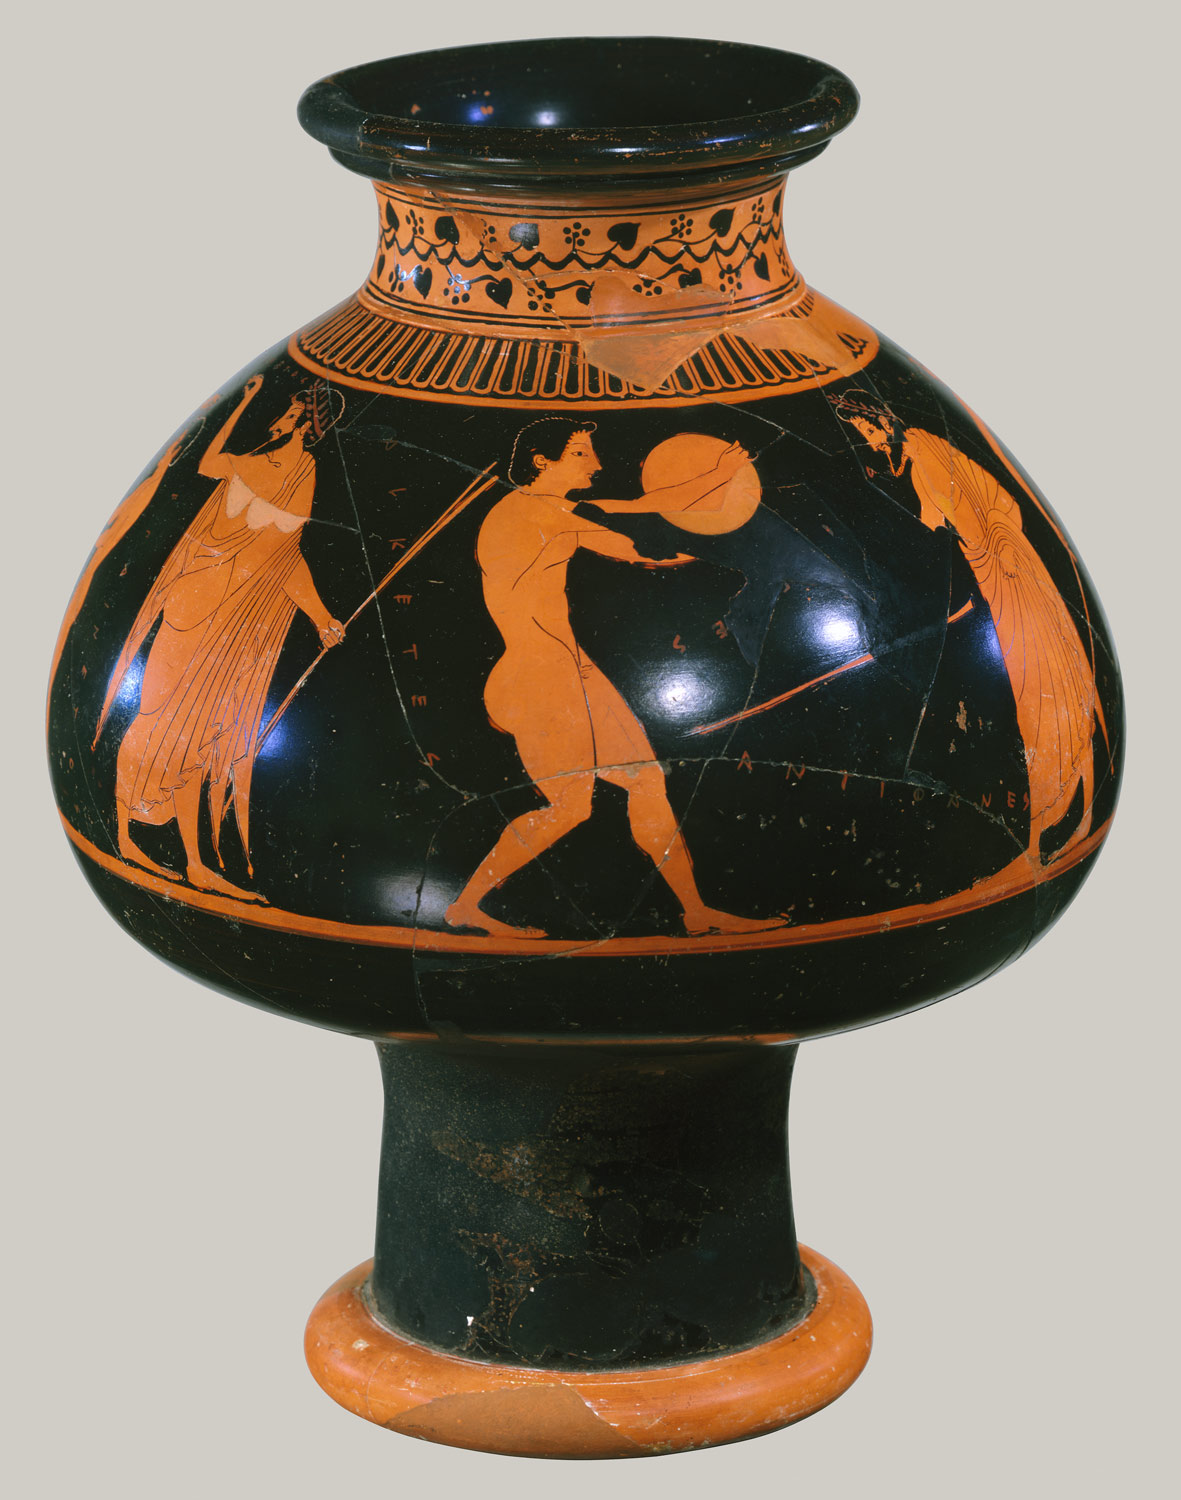 Terracotta Psykter Vase For Cooling Wine Attributed To Oltos 10 210 18 Work Of Art